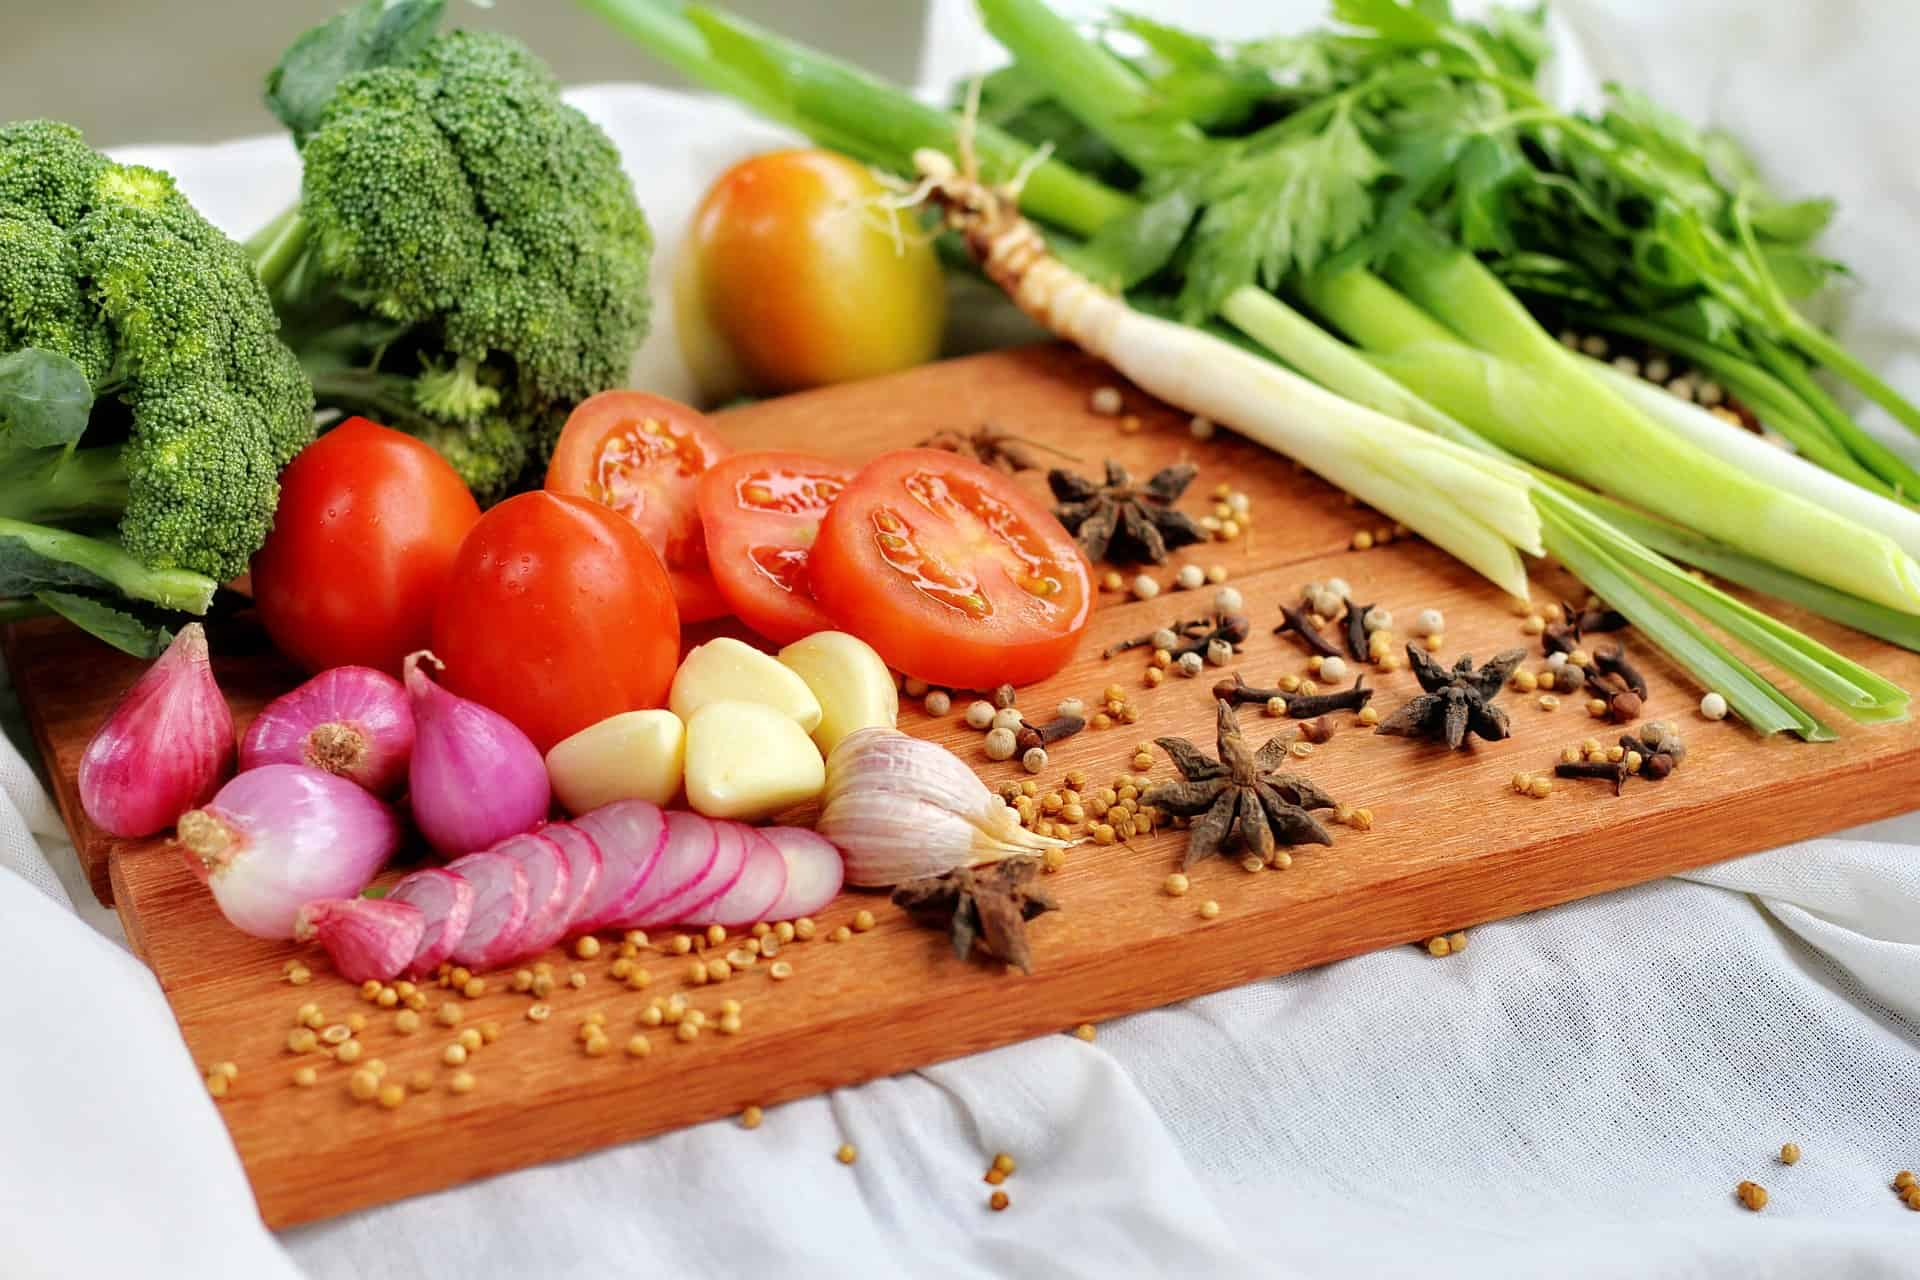 some easy vegetable recipes